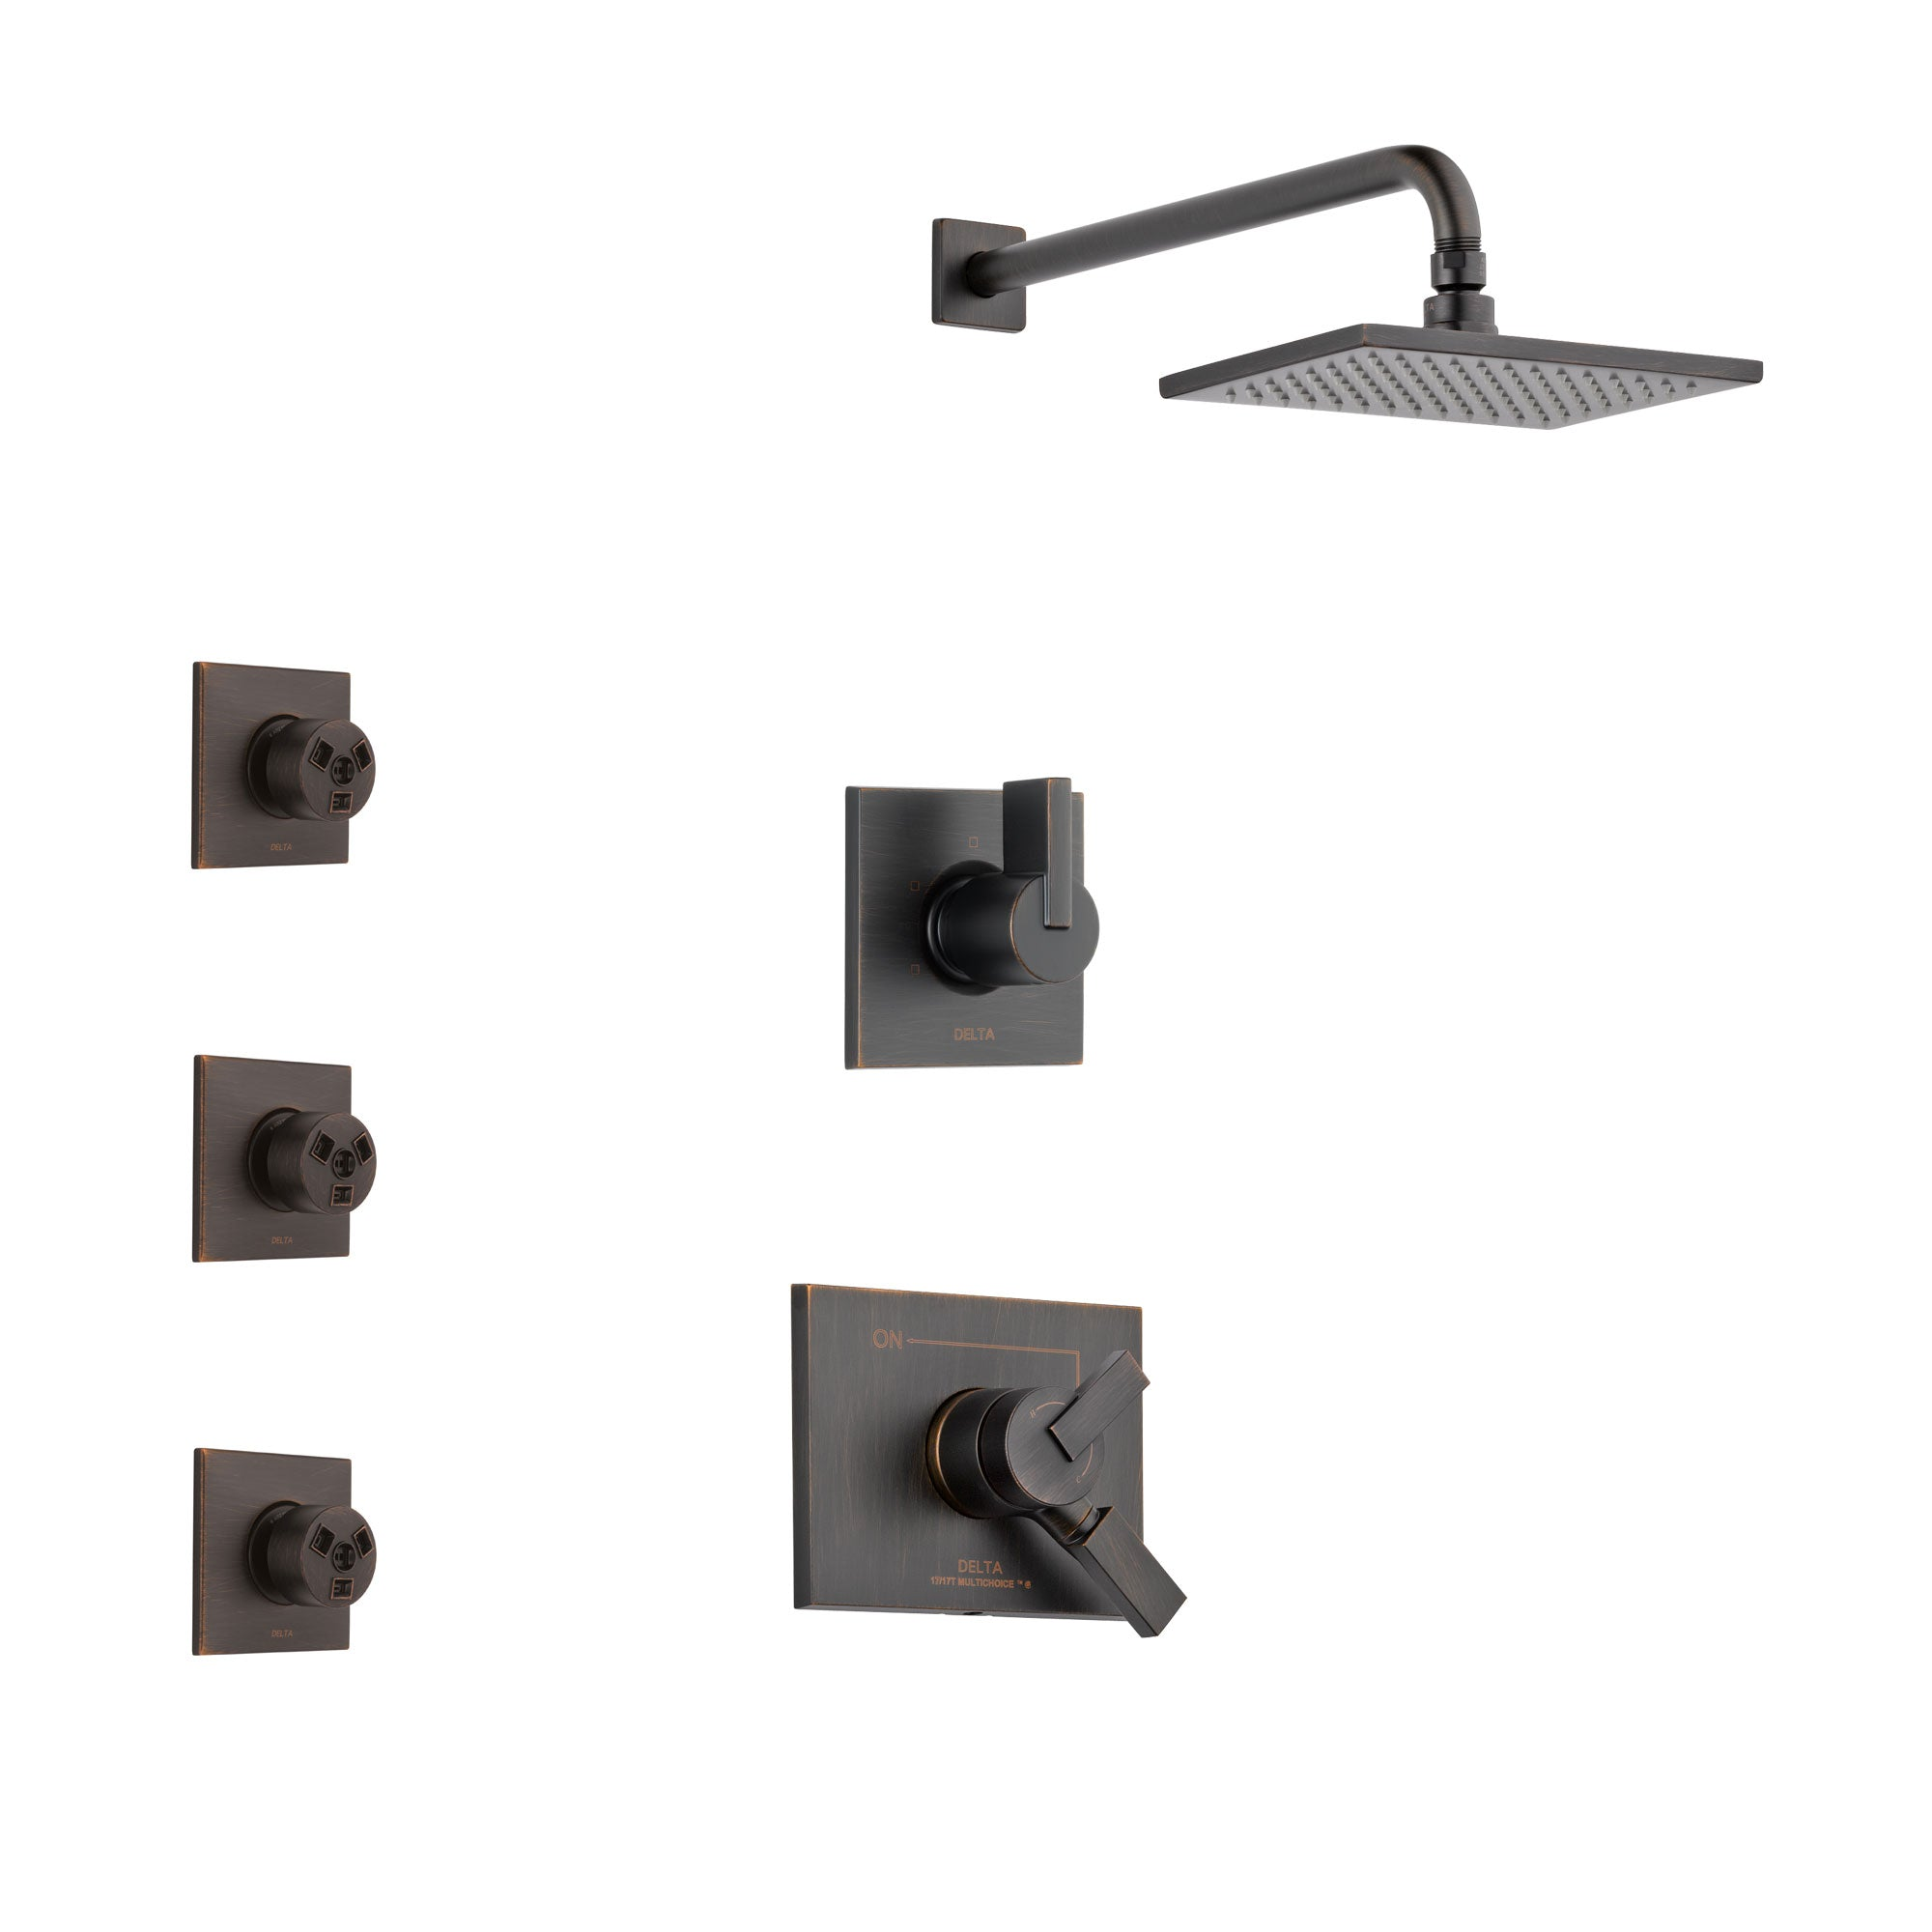 Delta Vero Venetian Bronze Finish Shower System with Dual Control Handle, 3-Setting Diverter, Showerhead, and 3 Body Sprays SS172531RB1